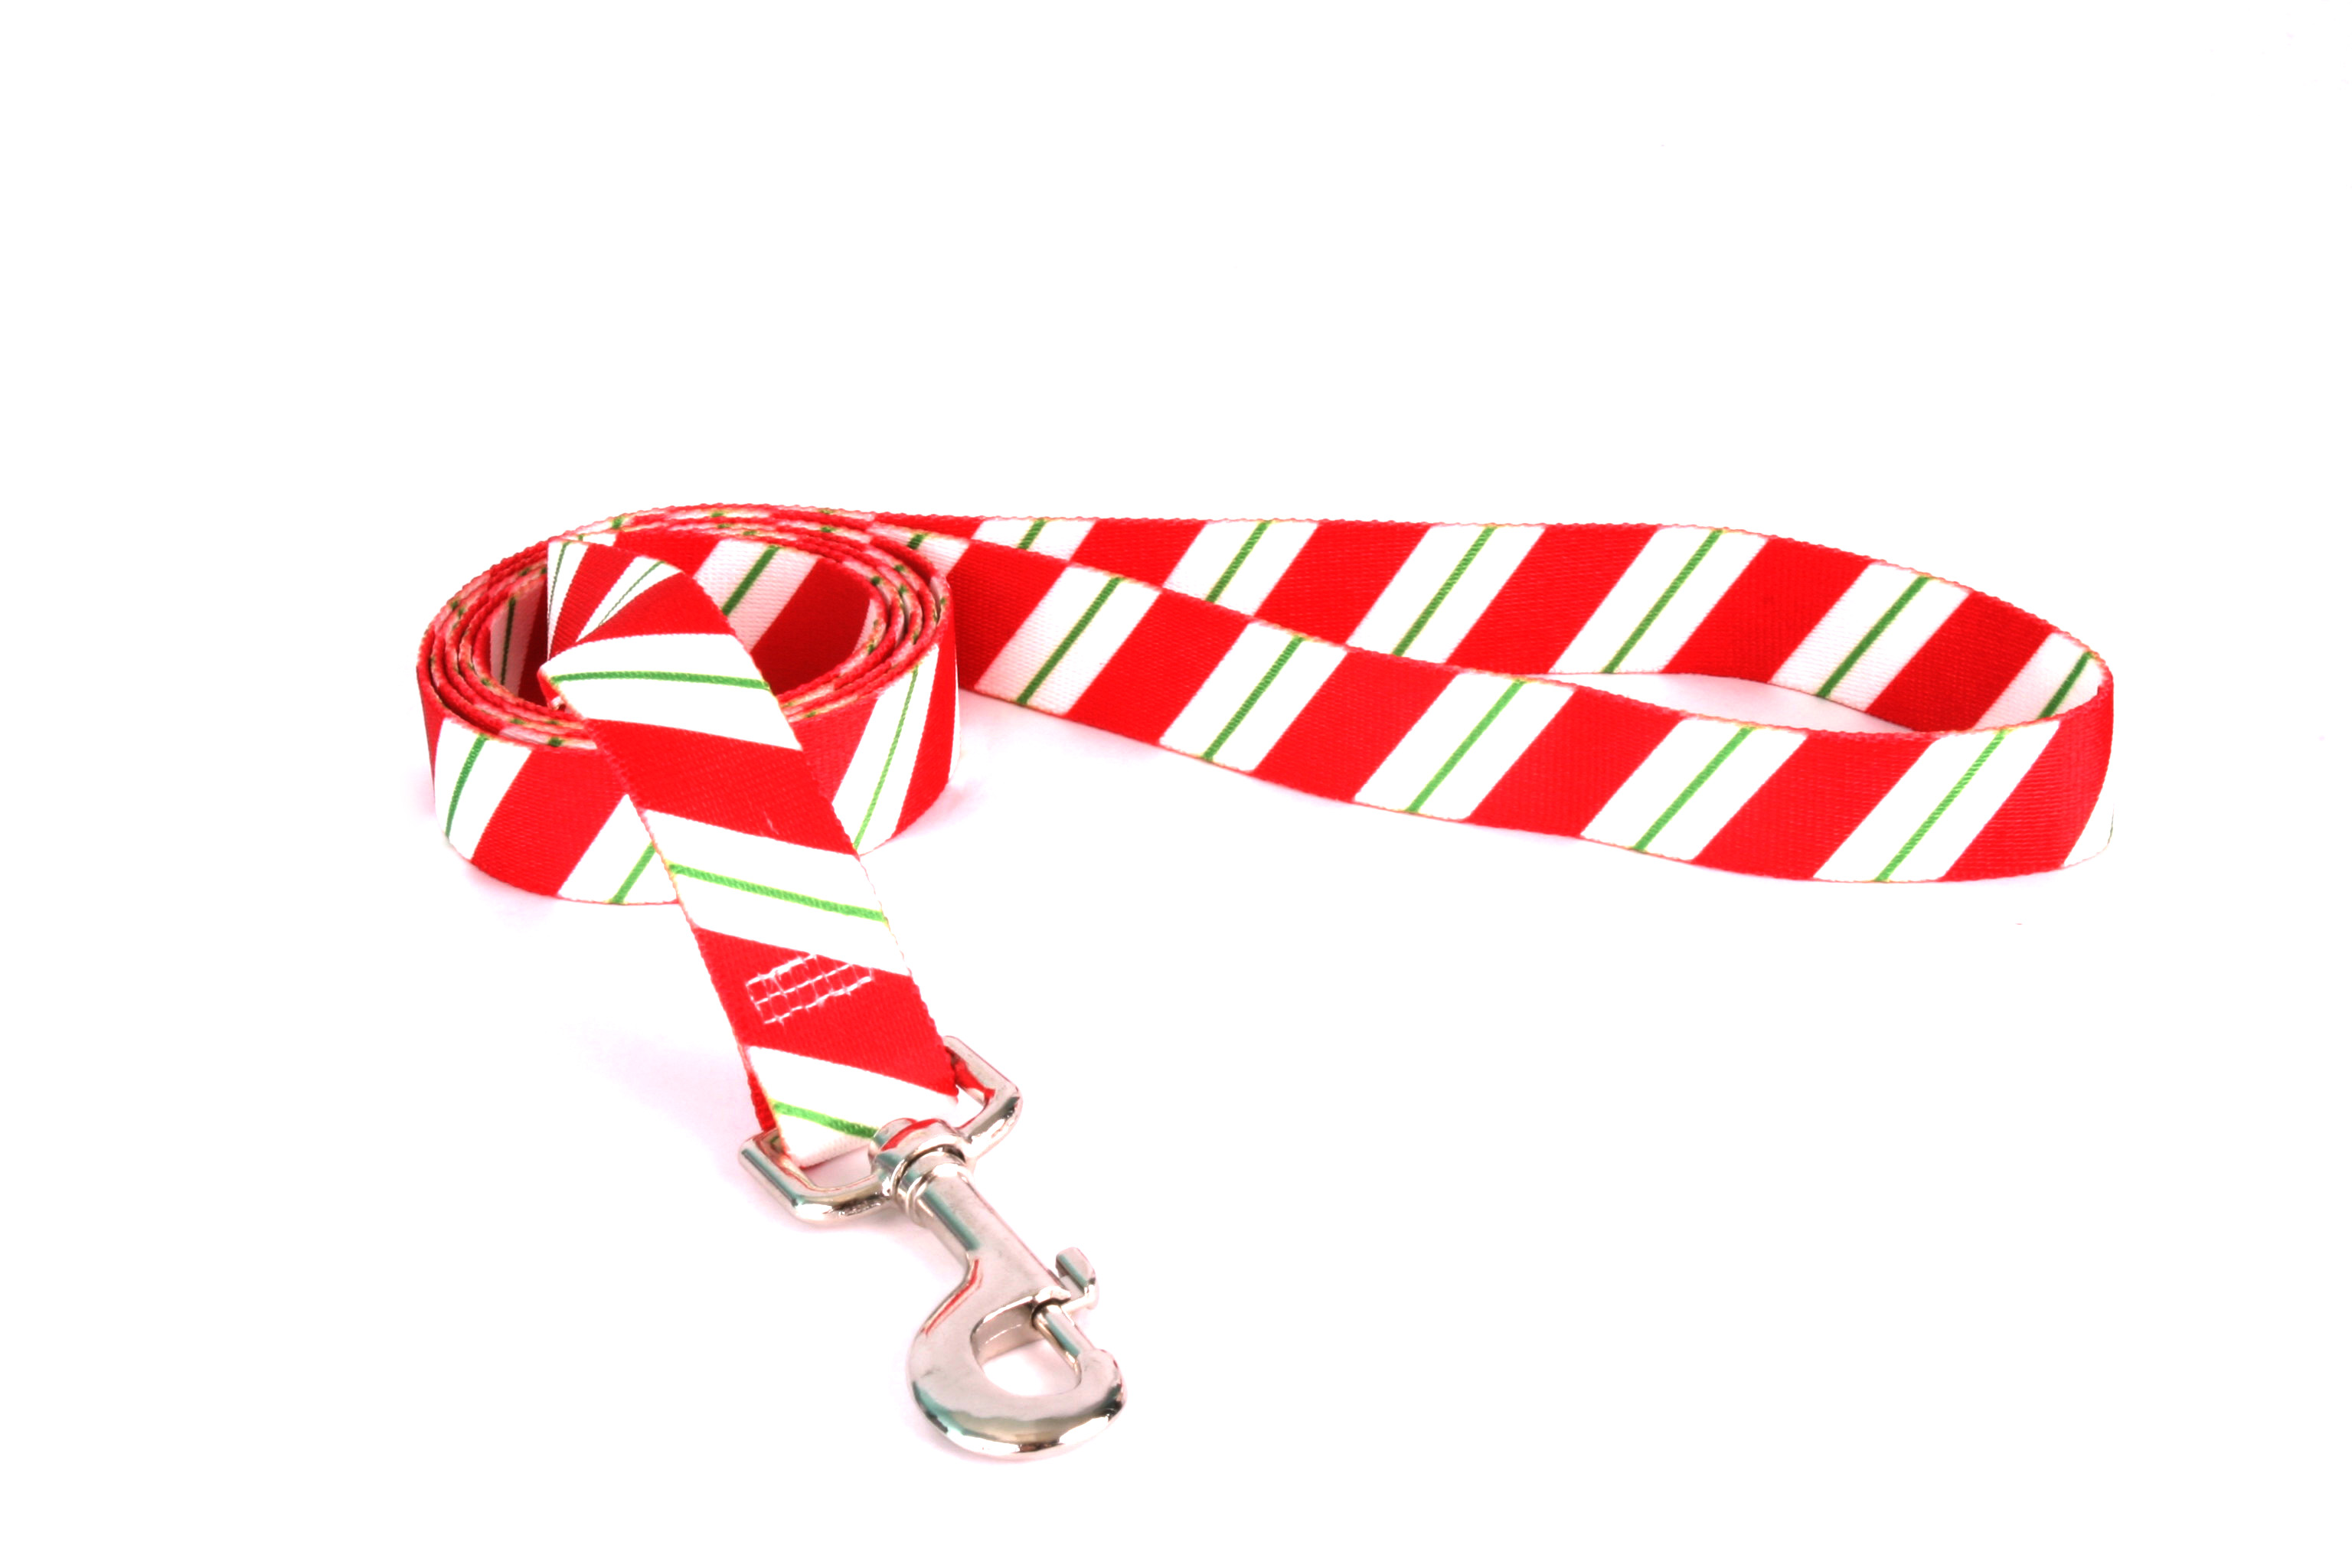 Peppermint Stick Lead